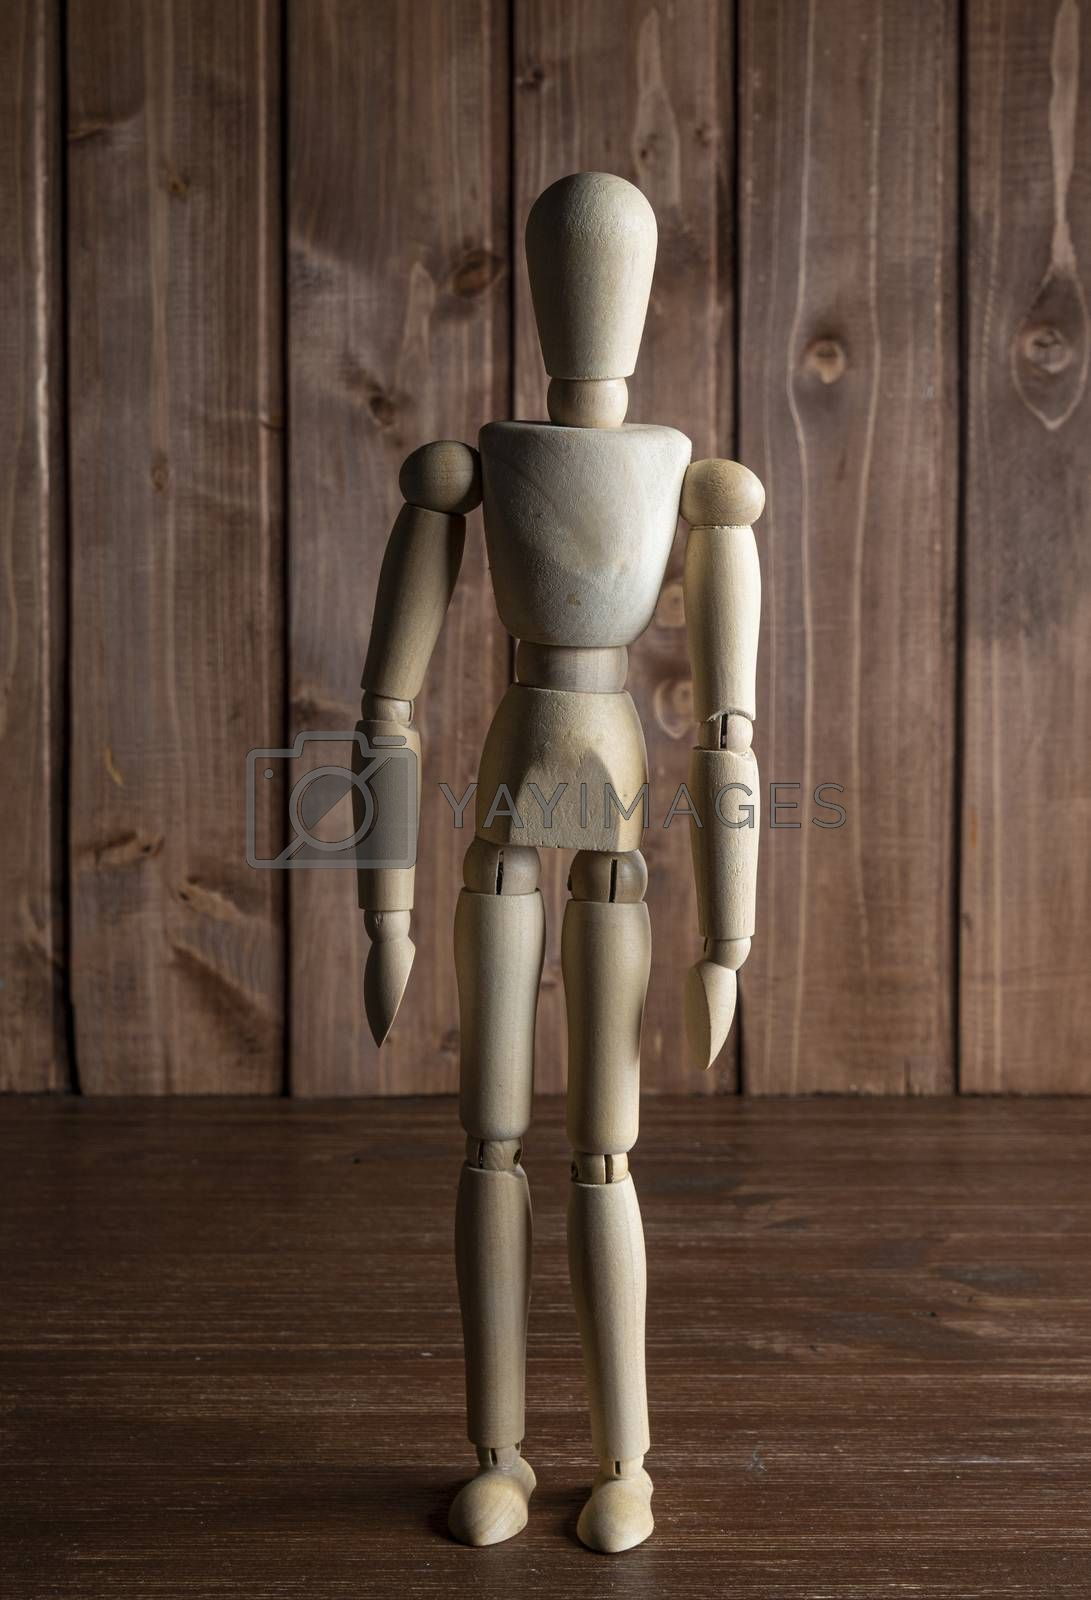 A mannequin on a wooden surface